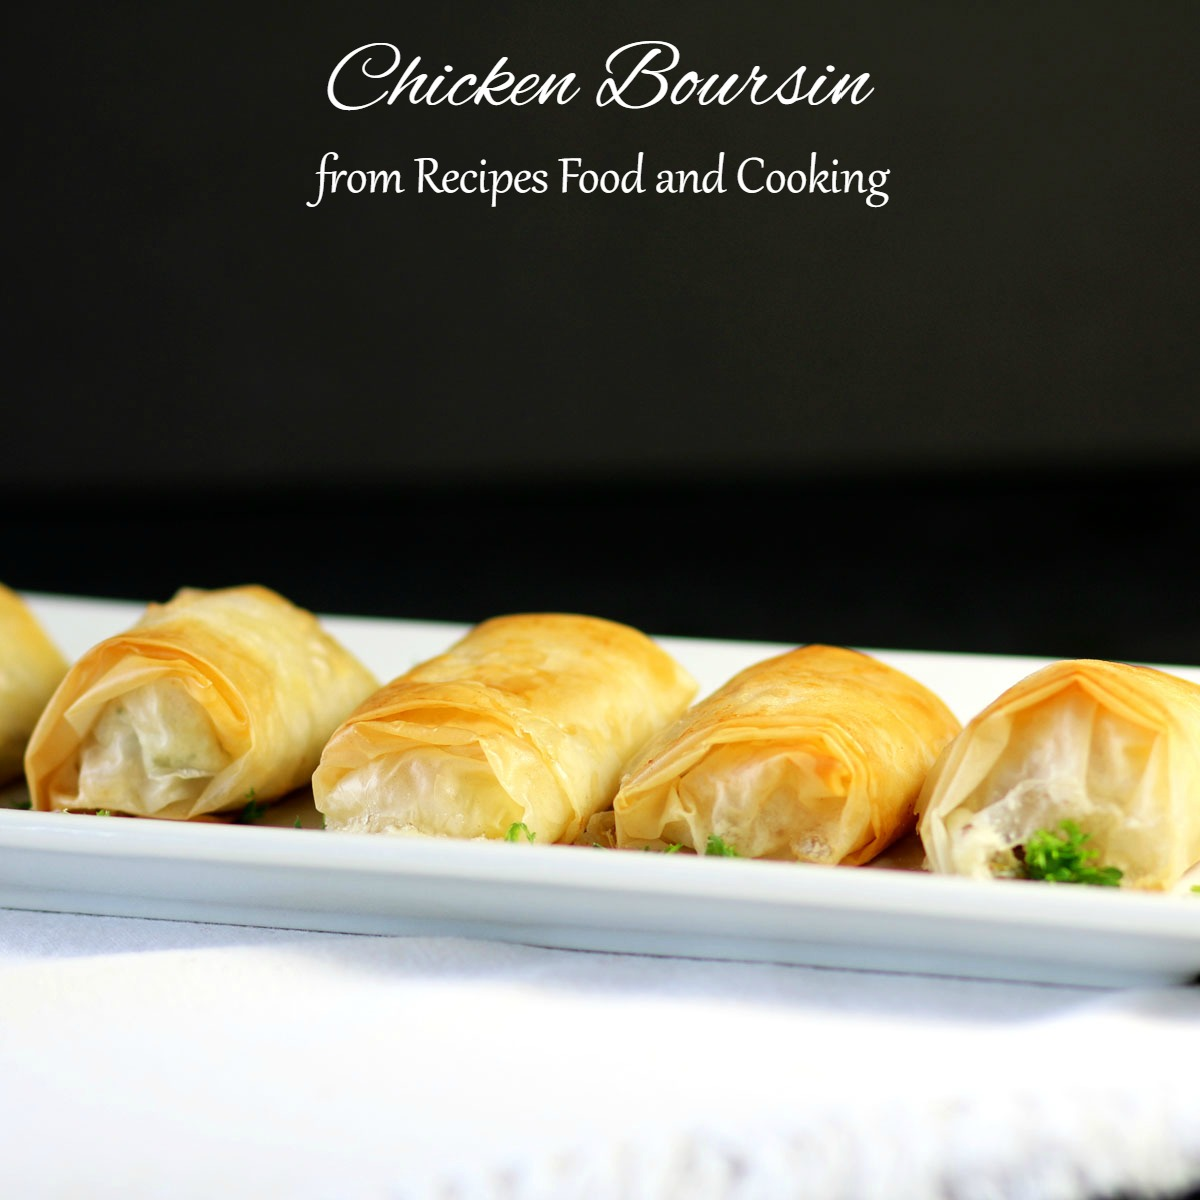 Chicken Boursin for #SundaySupper - Recipes Food and Cooking